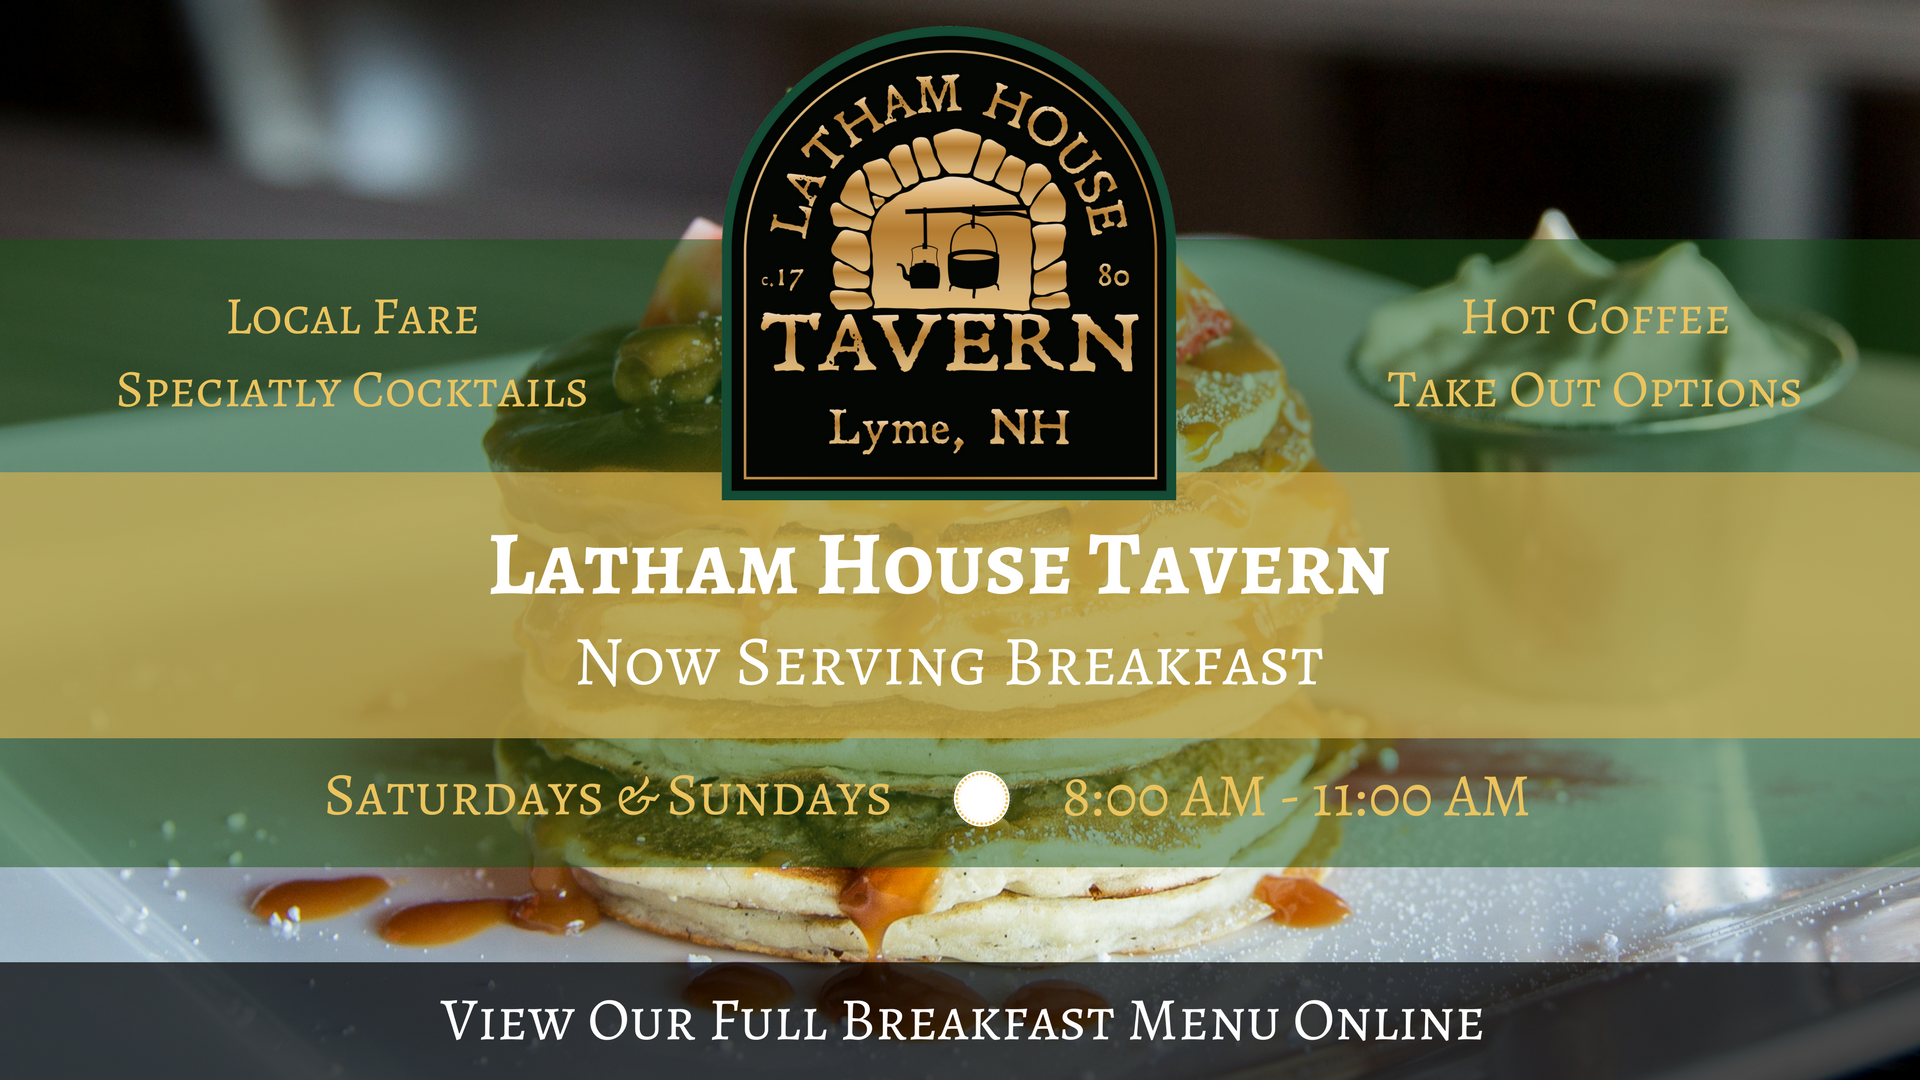 Now Serving Breakfast at the Latham House Tavern